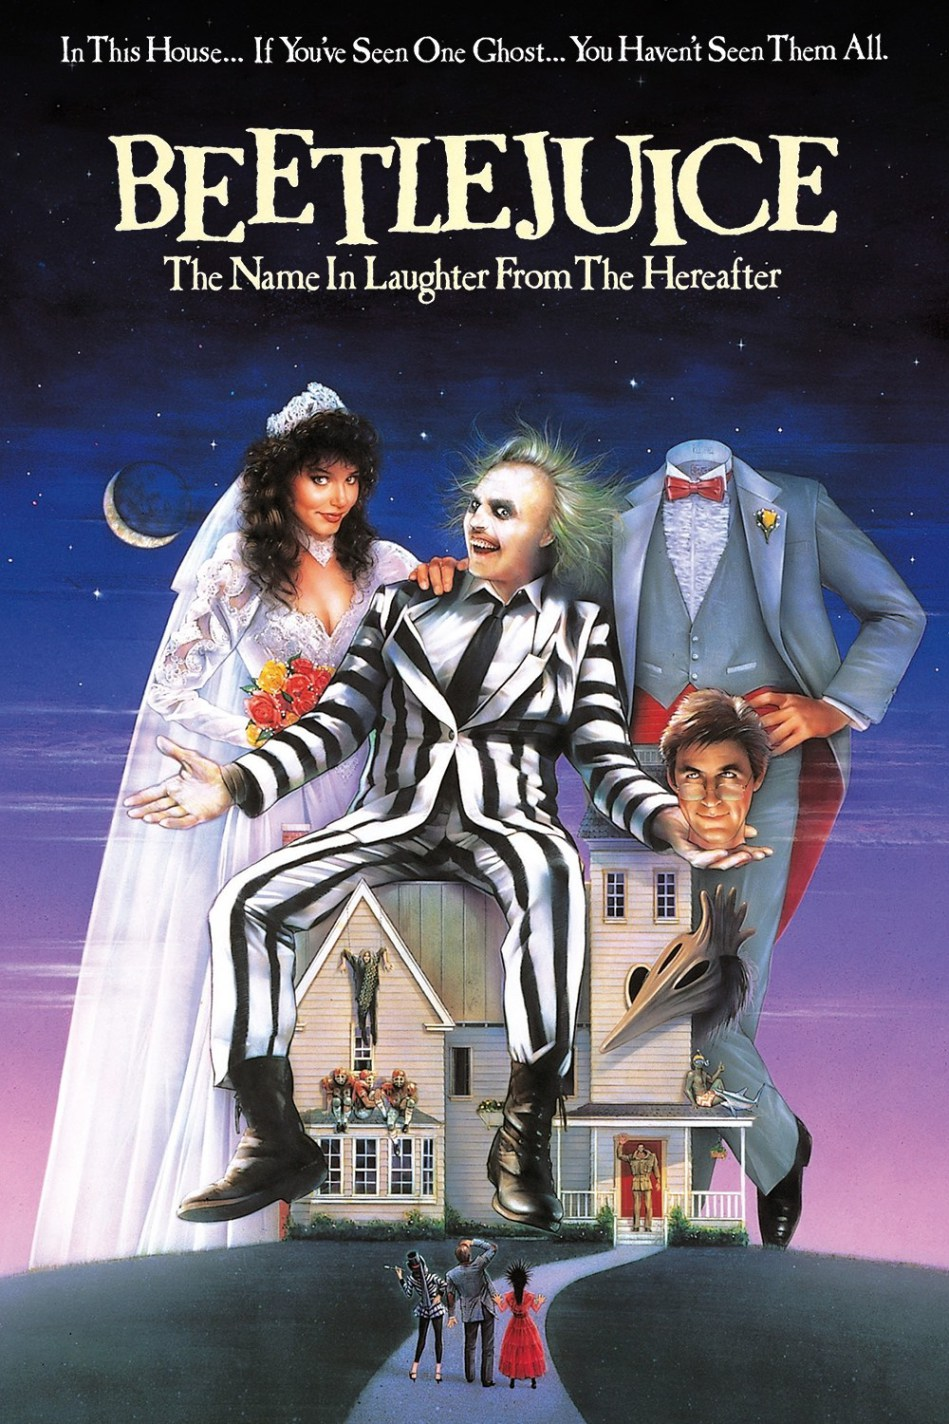 beetlejuice-movie-poster.jpg